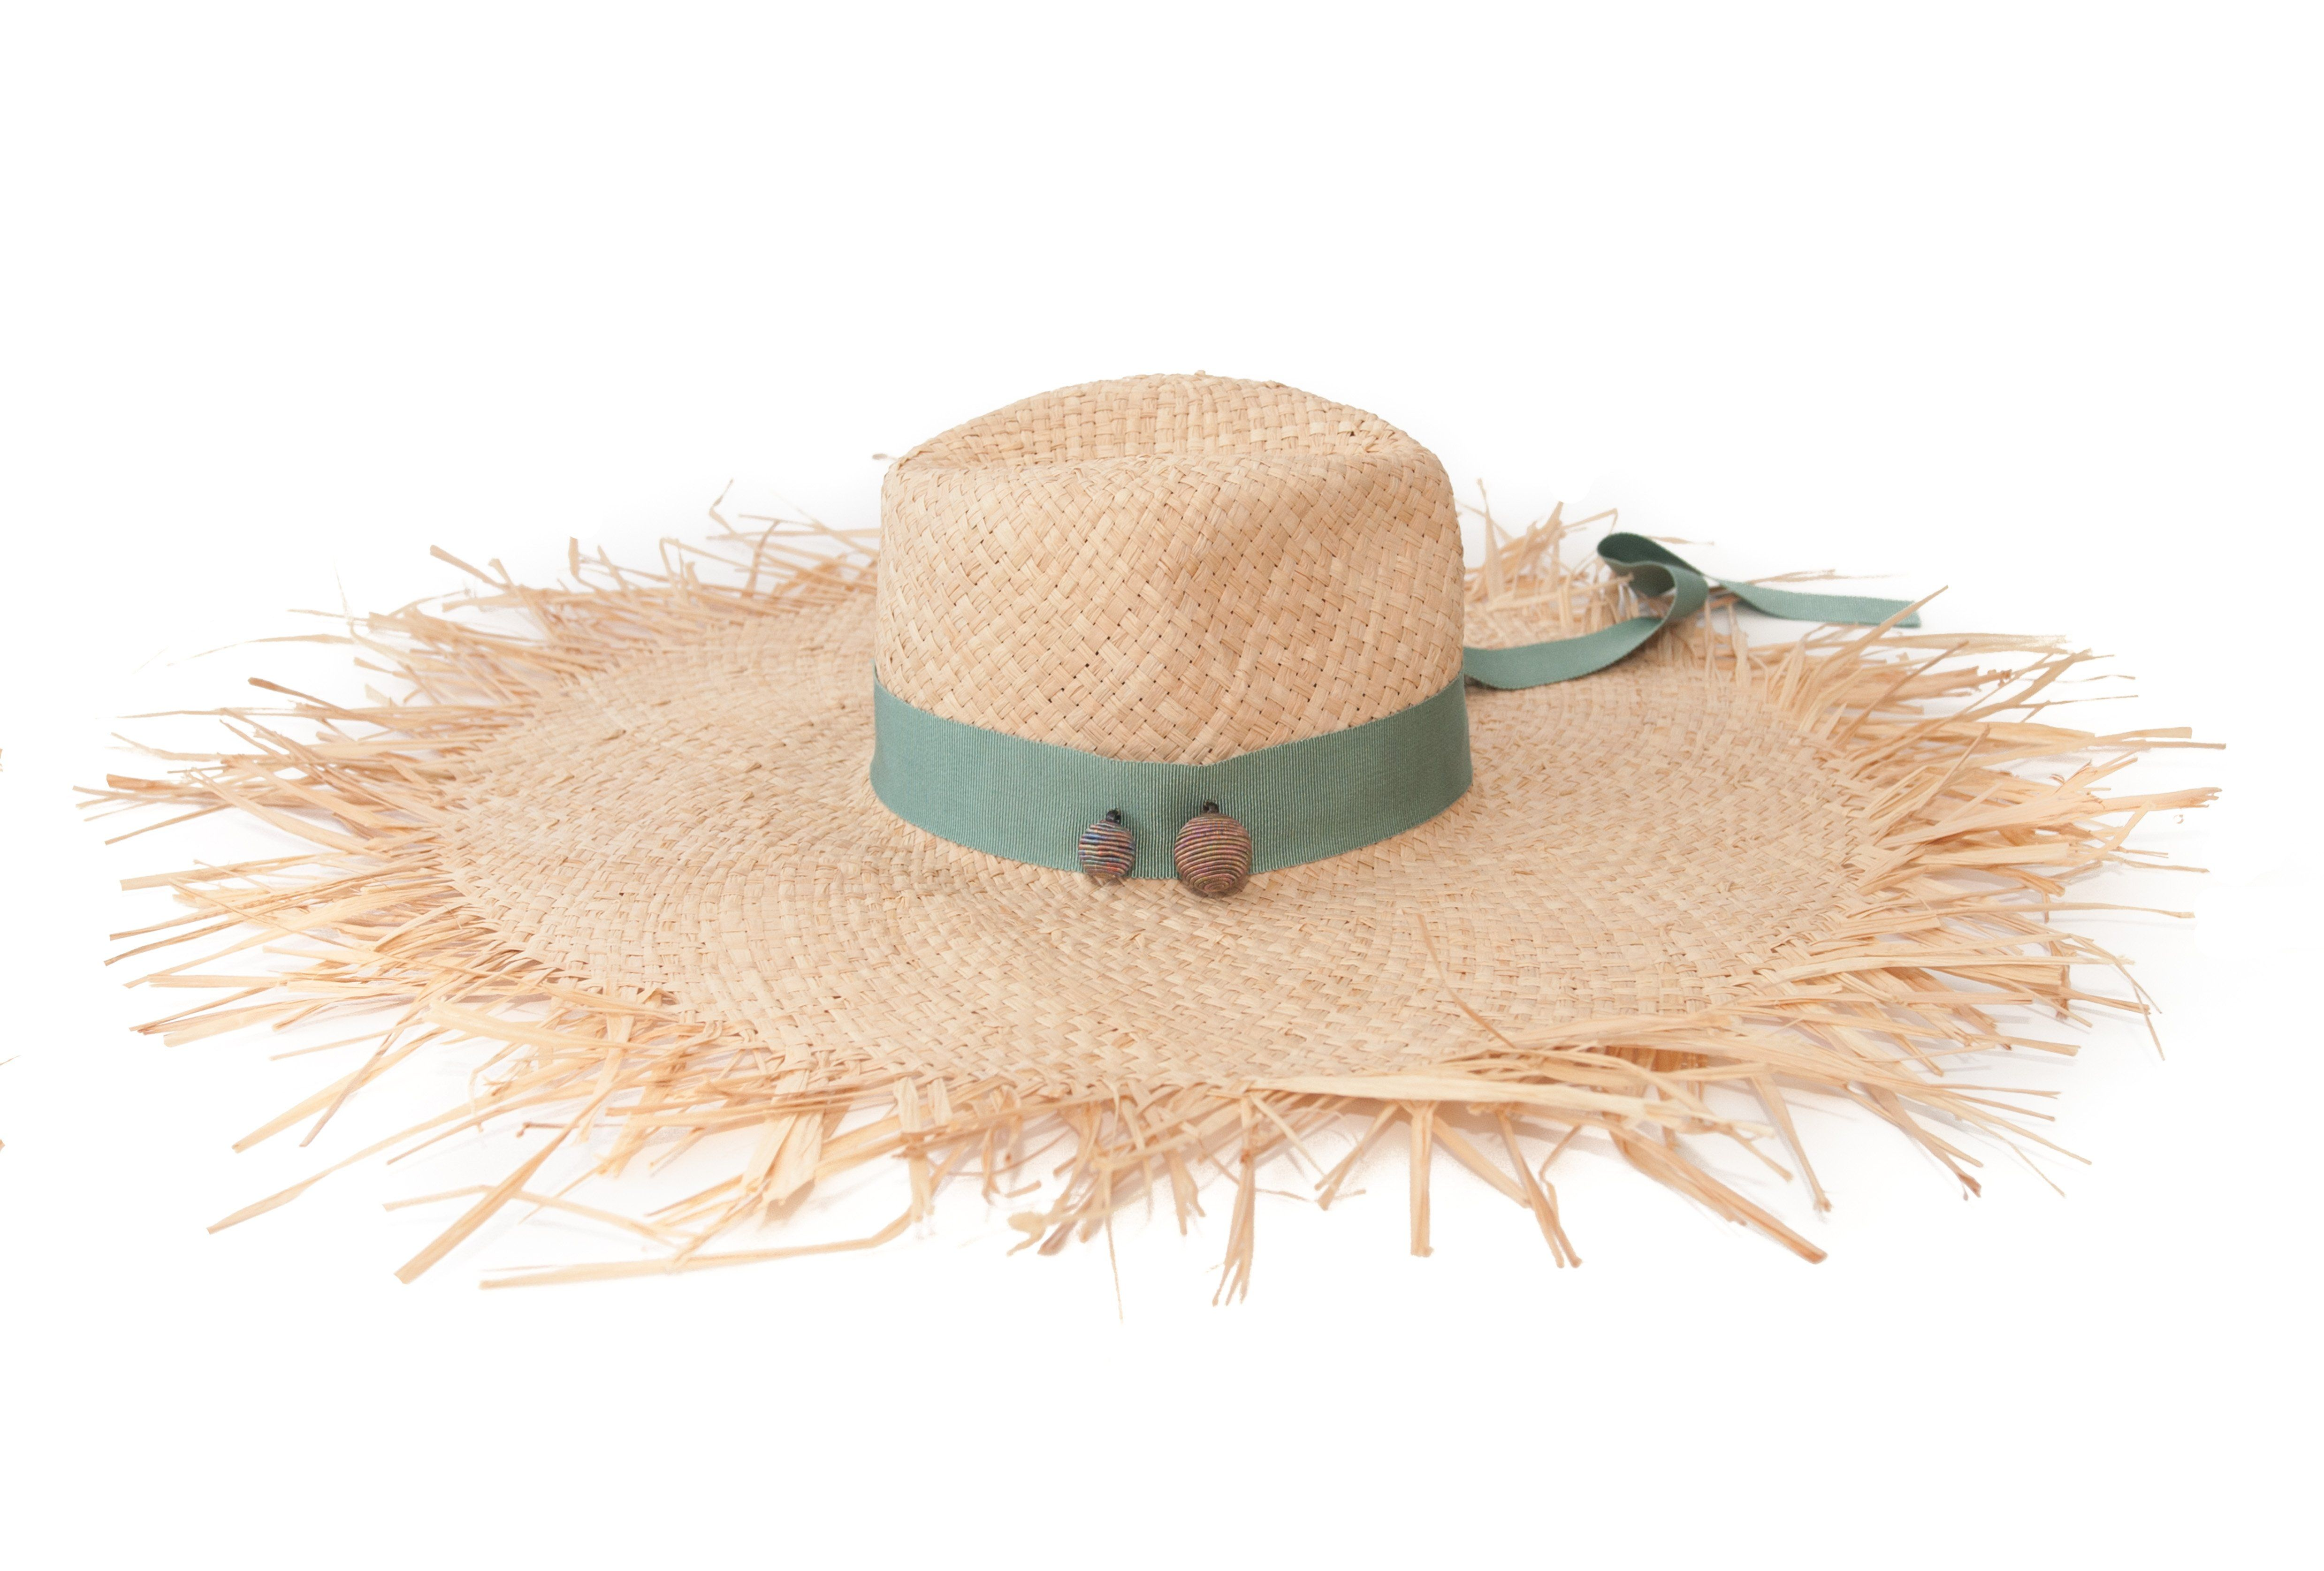 e293d007 23 Classic Straw Hats for Summer 2017 - Best Sun Hats to Wear to the Beach